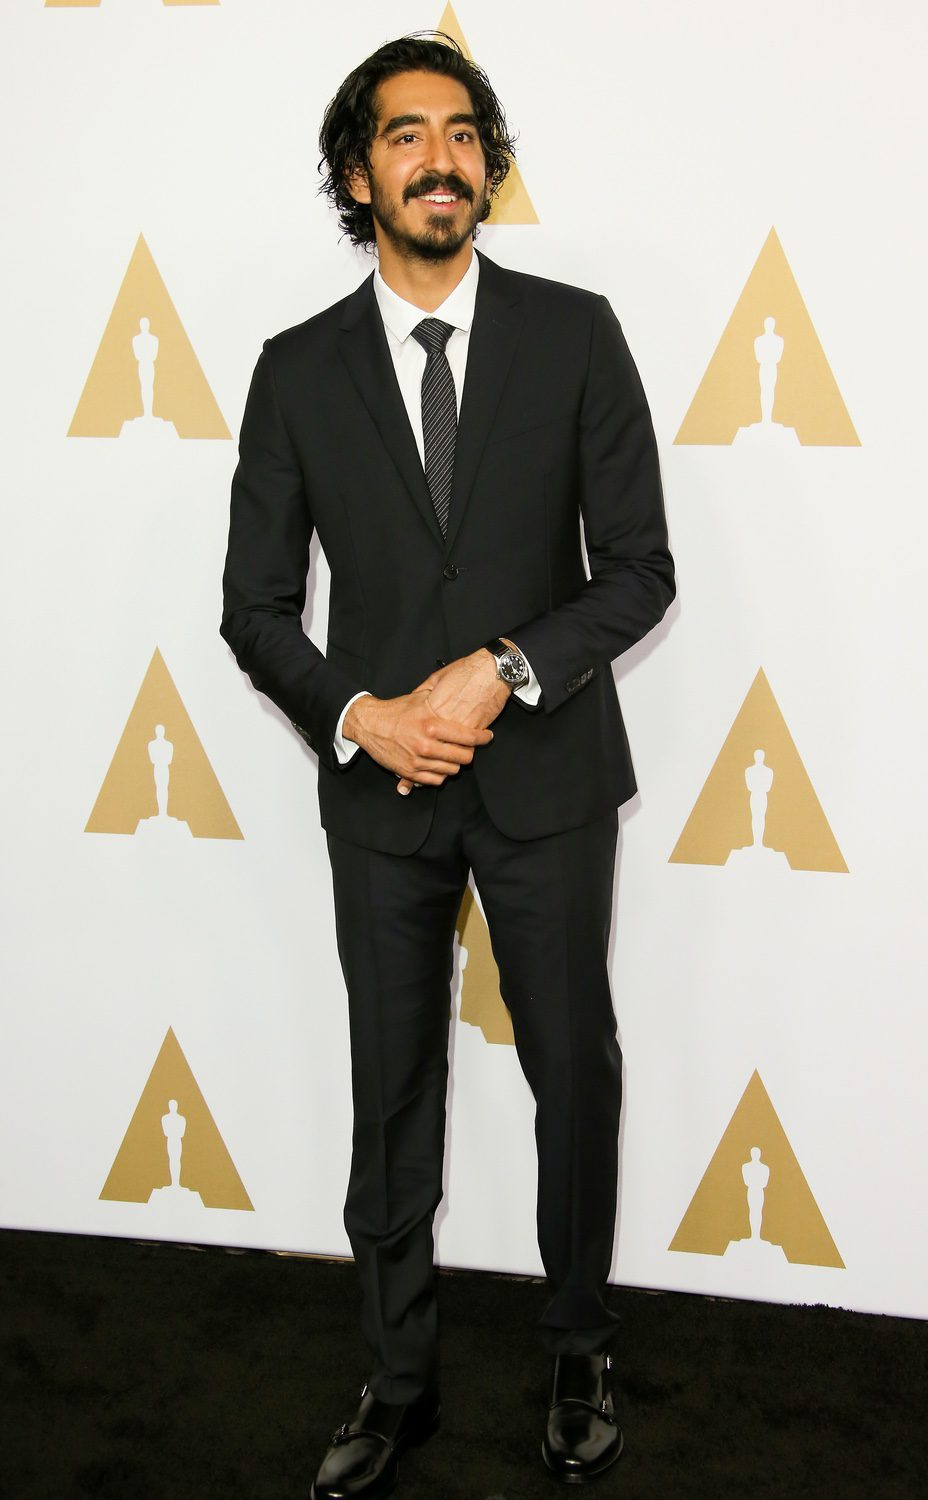 Dev Patel at the 2017 Annual Academy Awards Nominee Luncheon